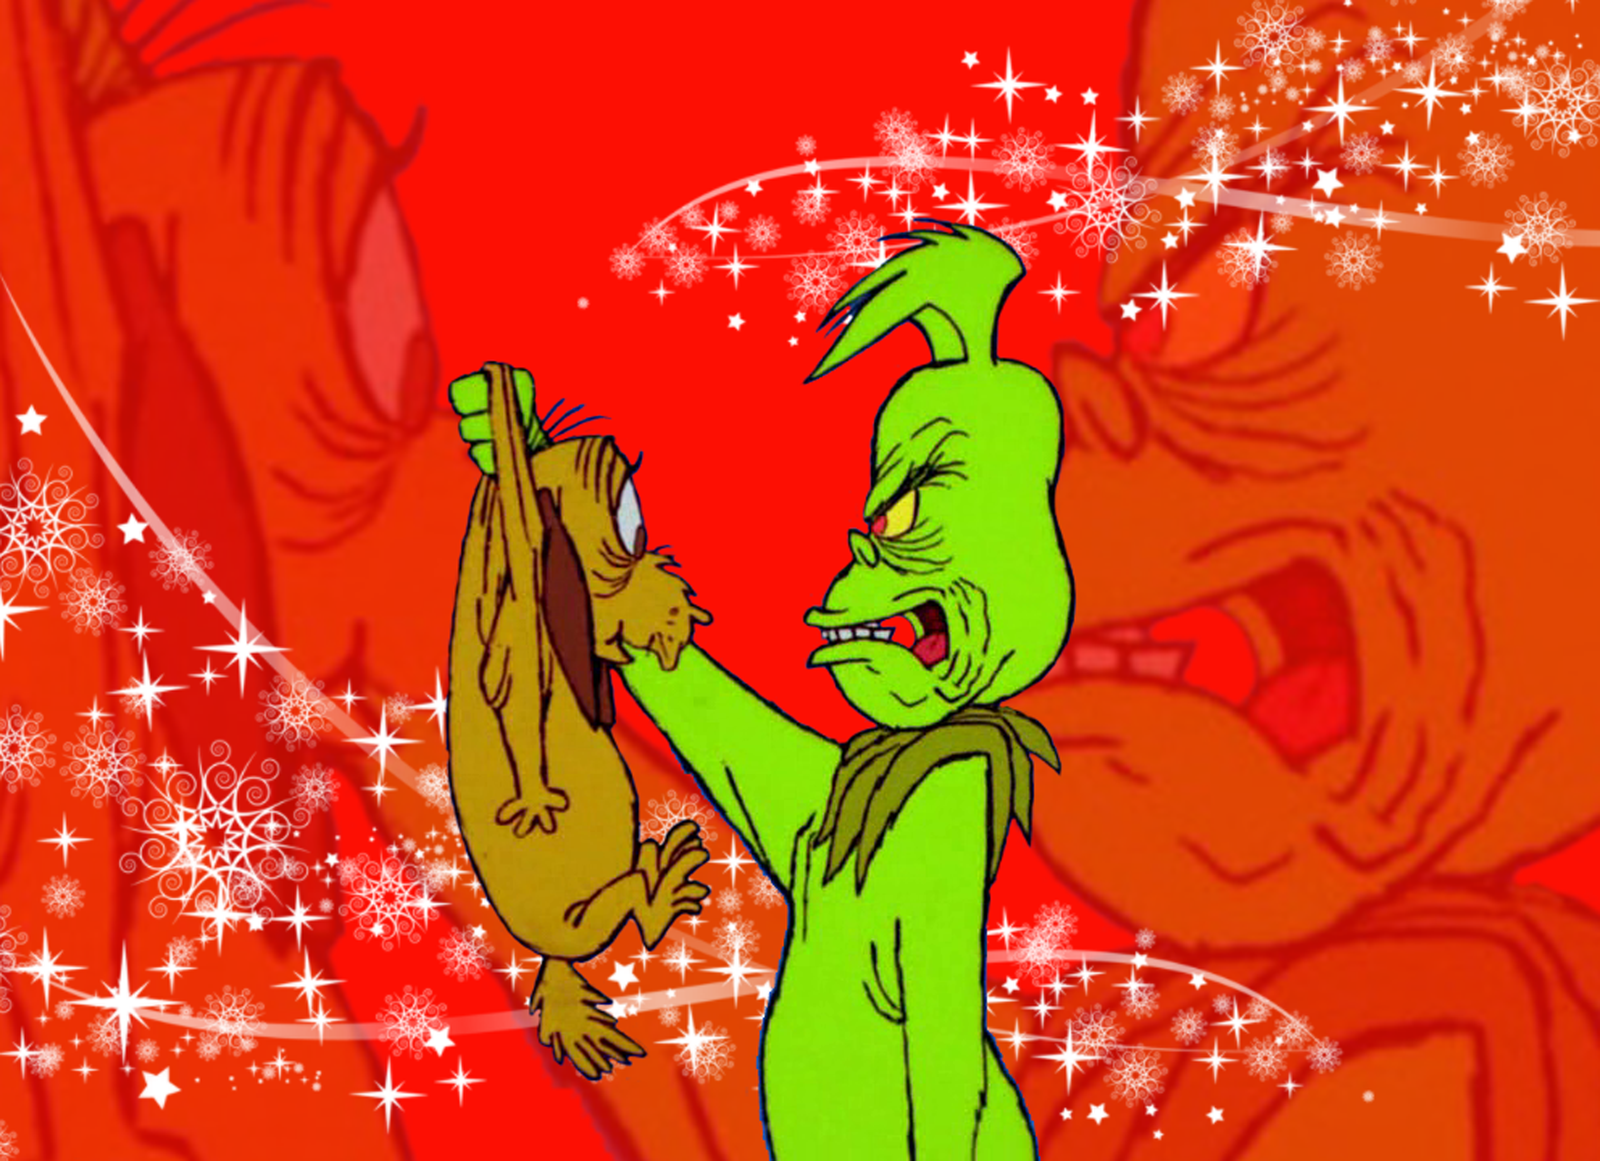 The Grinch and his dog, Max! Grinch, Grinch stole